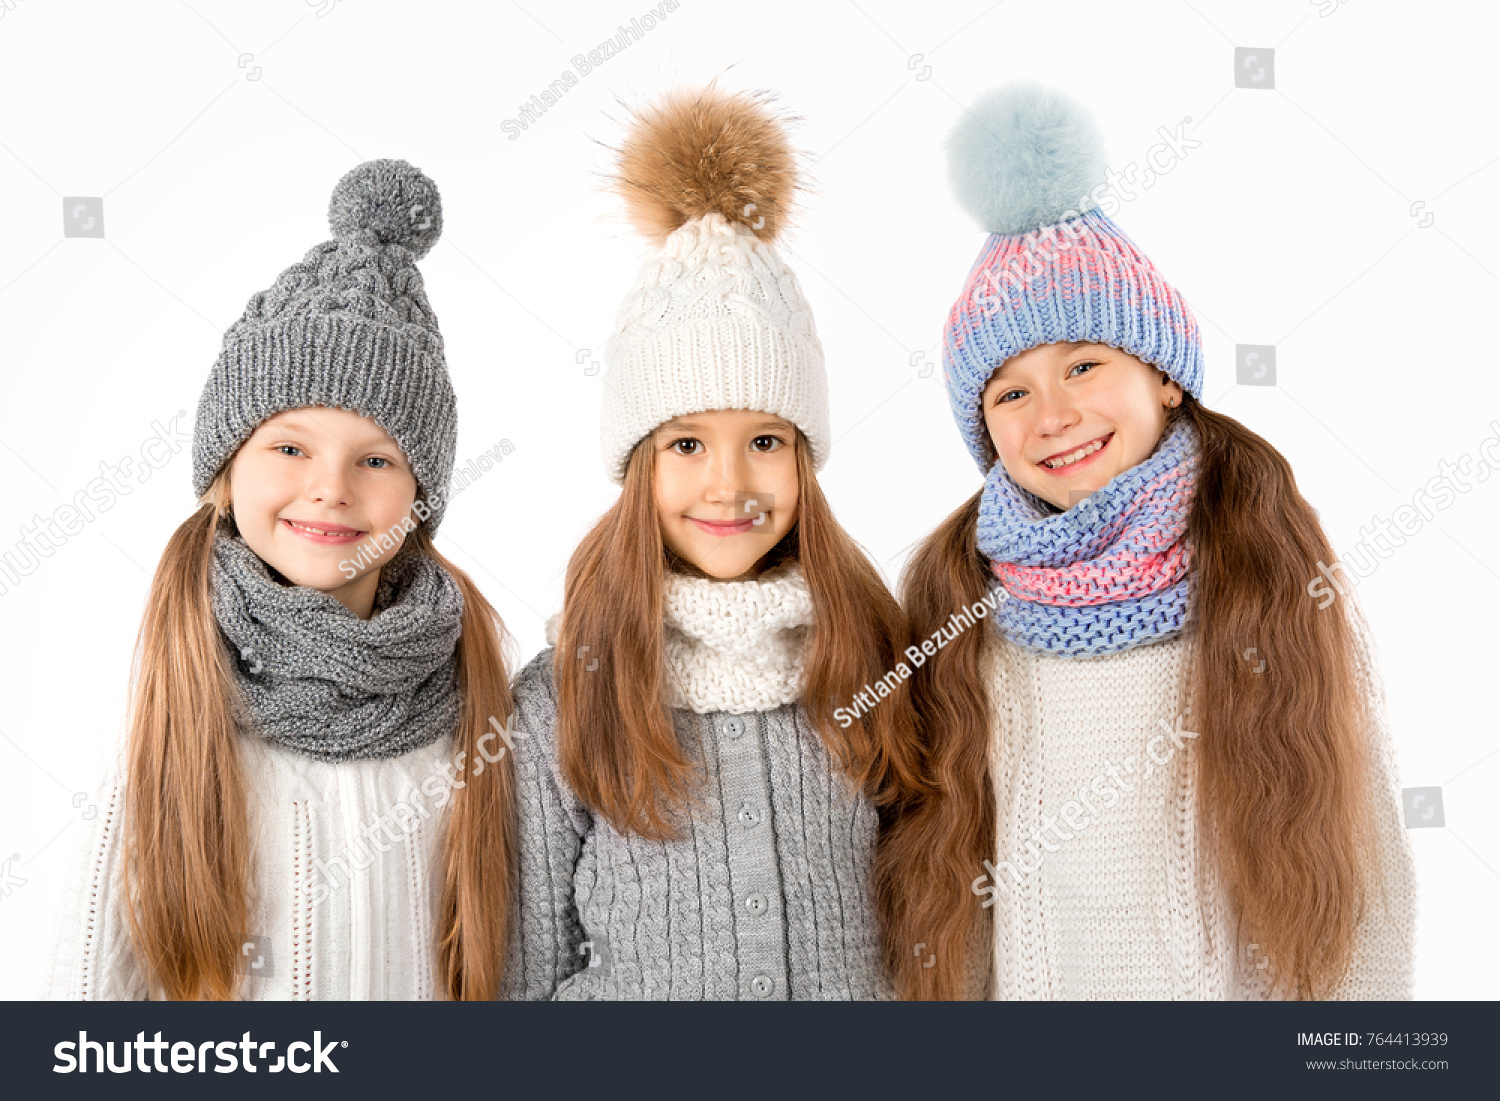 9a4d633860861 Group of cute kids in winter warm hats and scarfs isolated on a white  background.